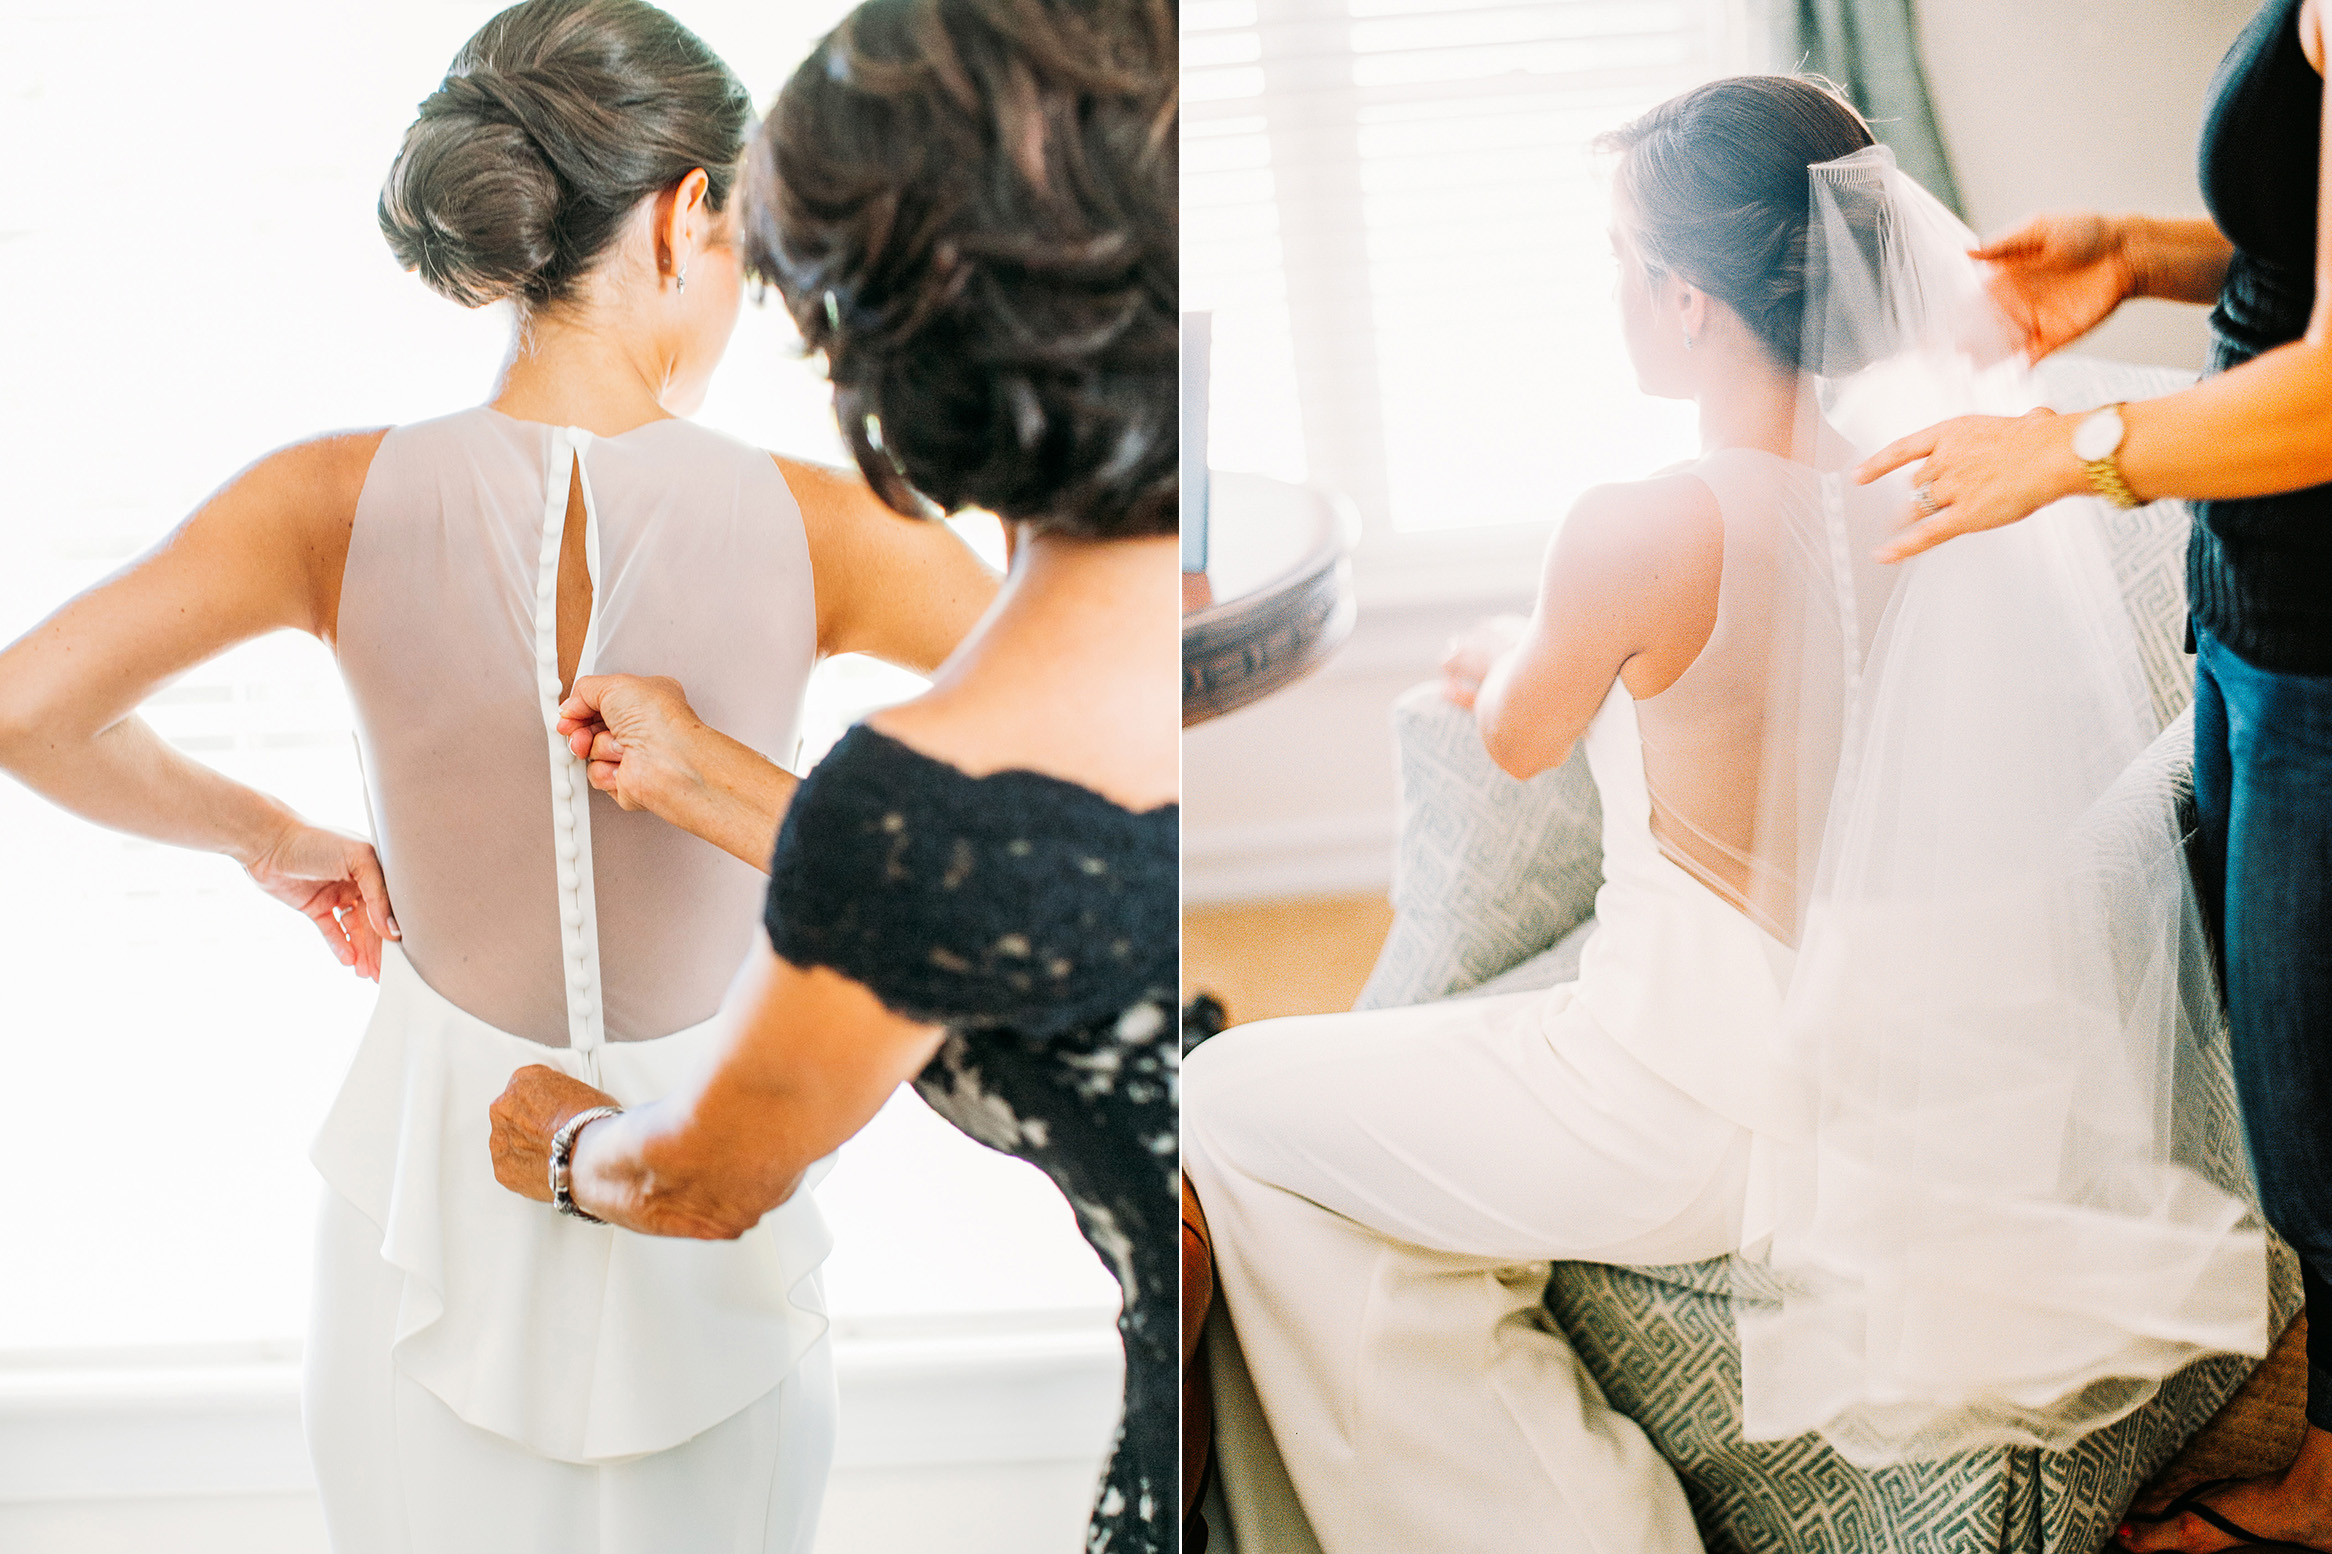 katie stoops photography-solomans island wedding06.jpg